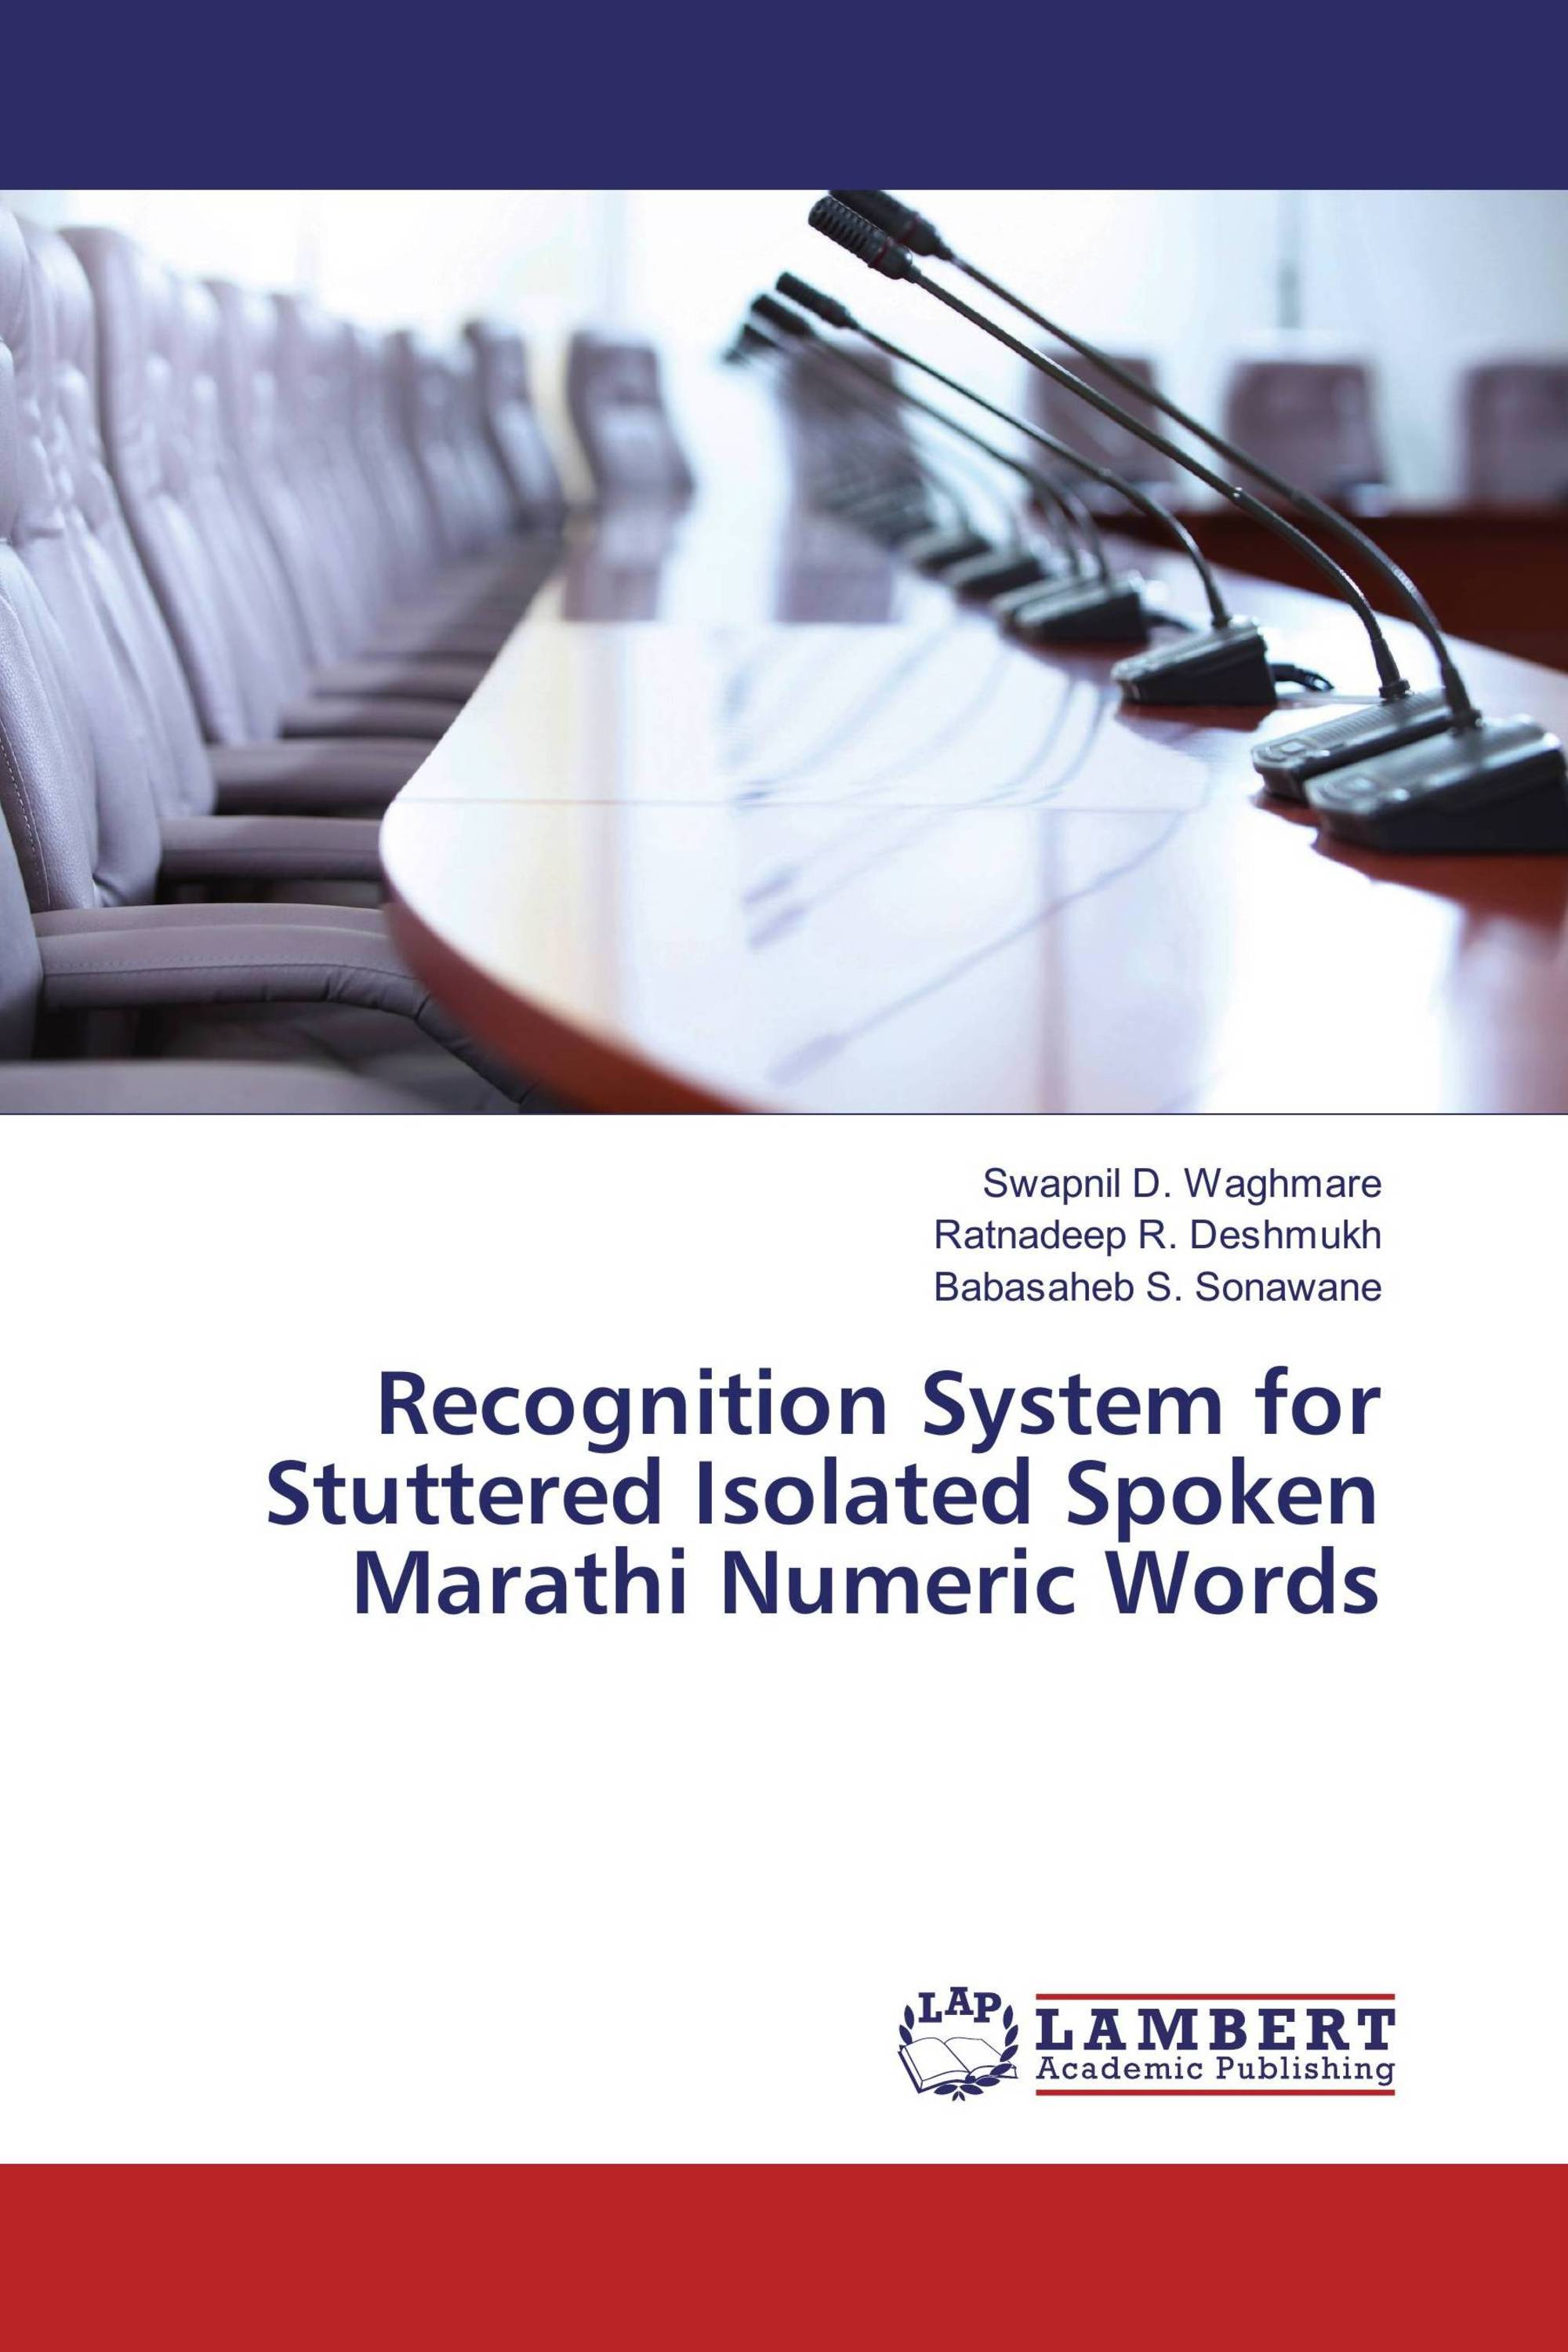 Recognition System for Stuttered Isolated Spoken Marathi Numeric